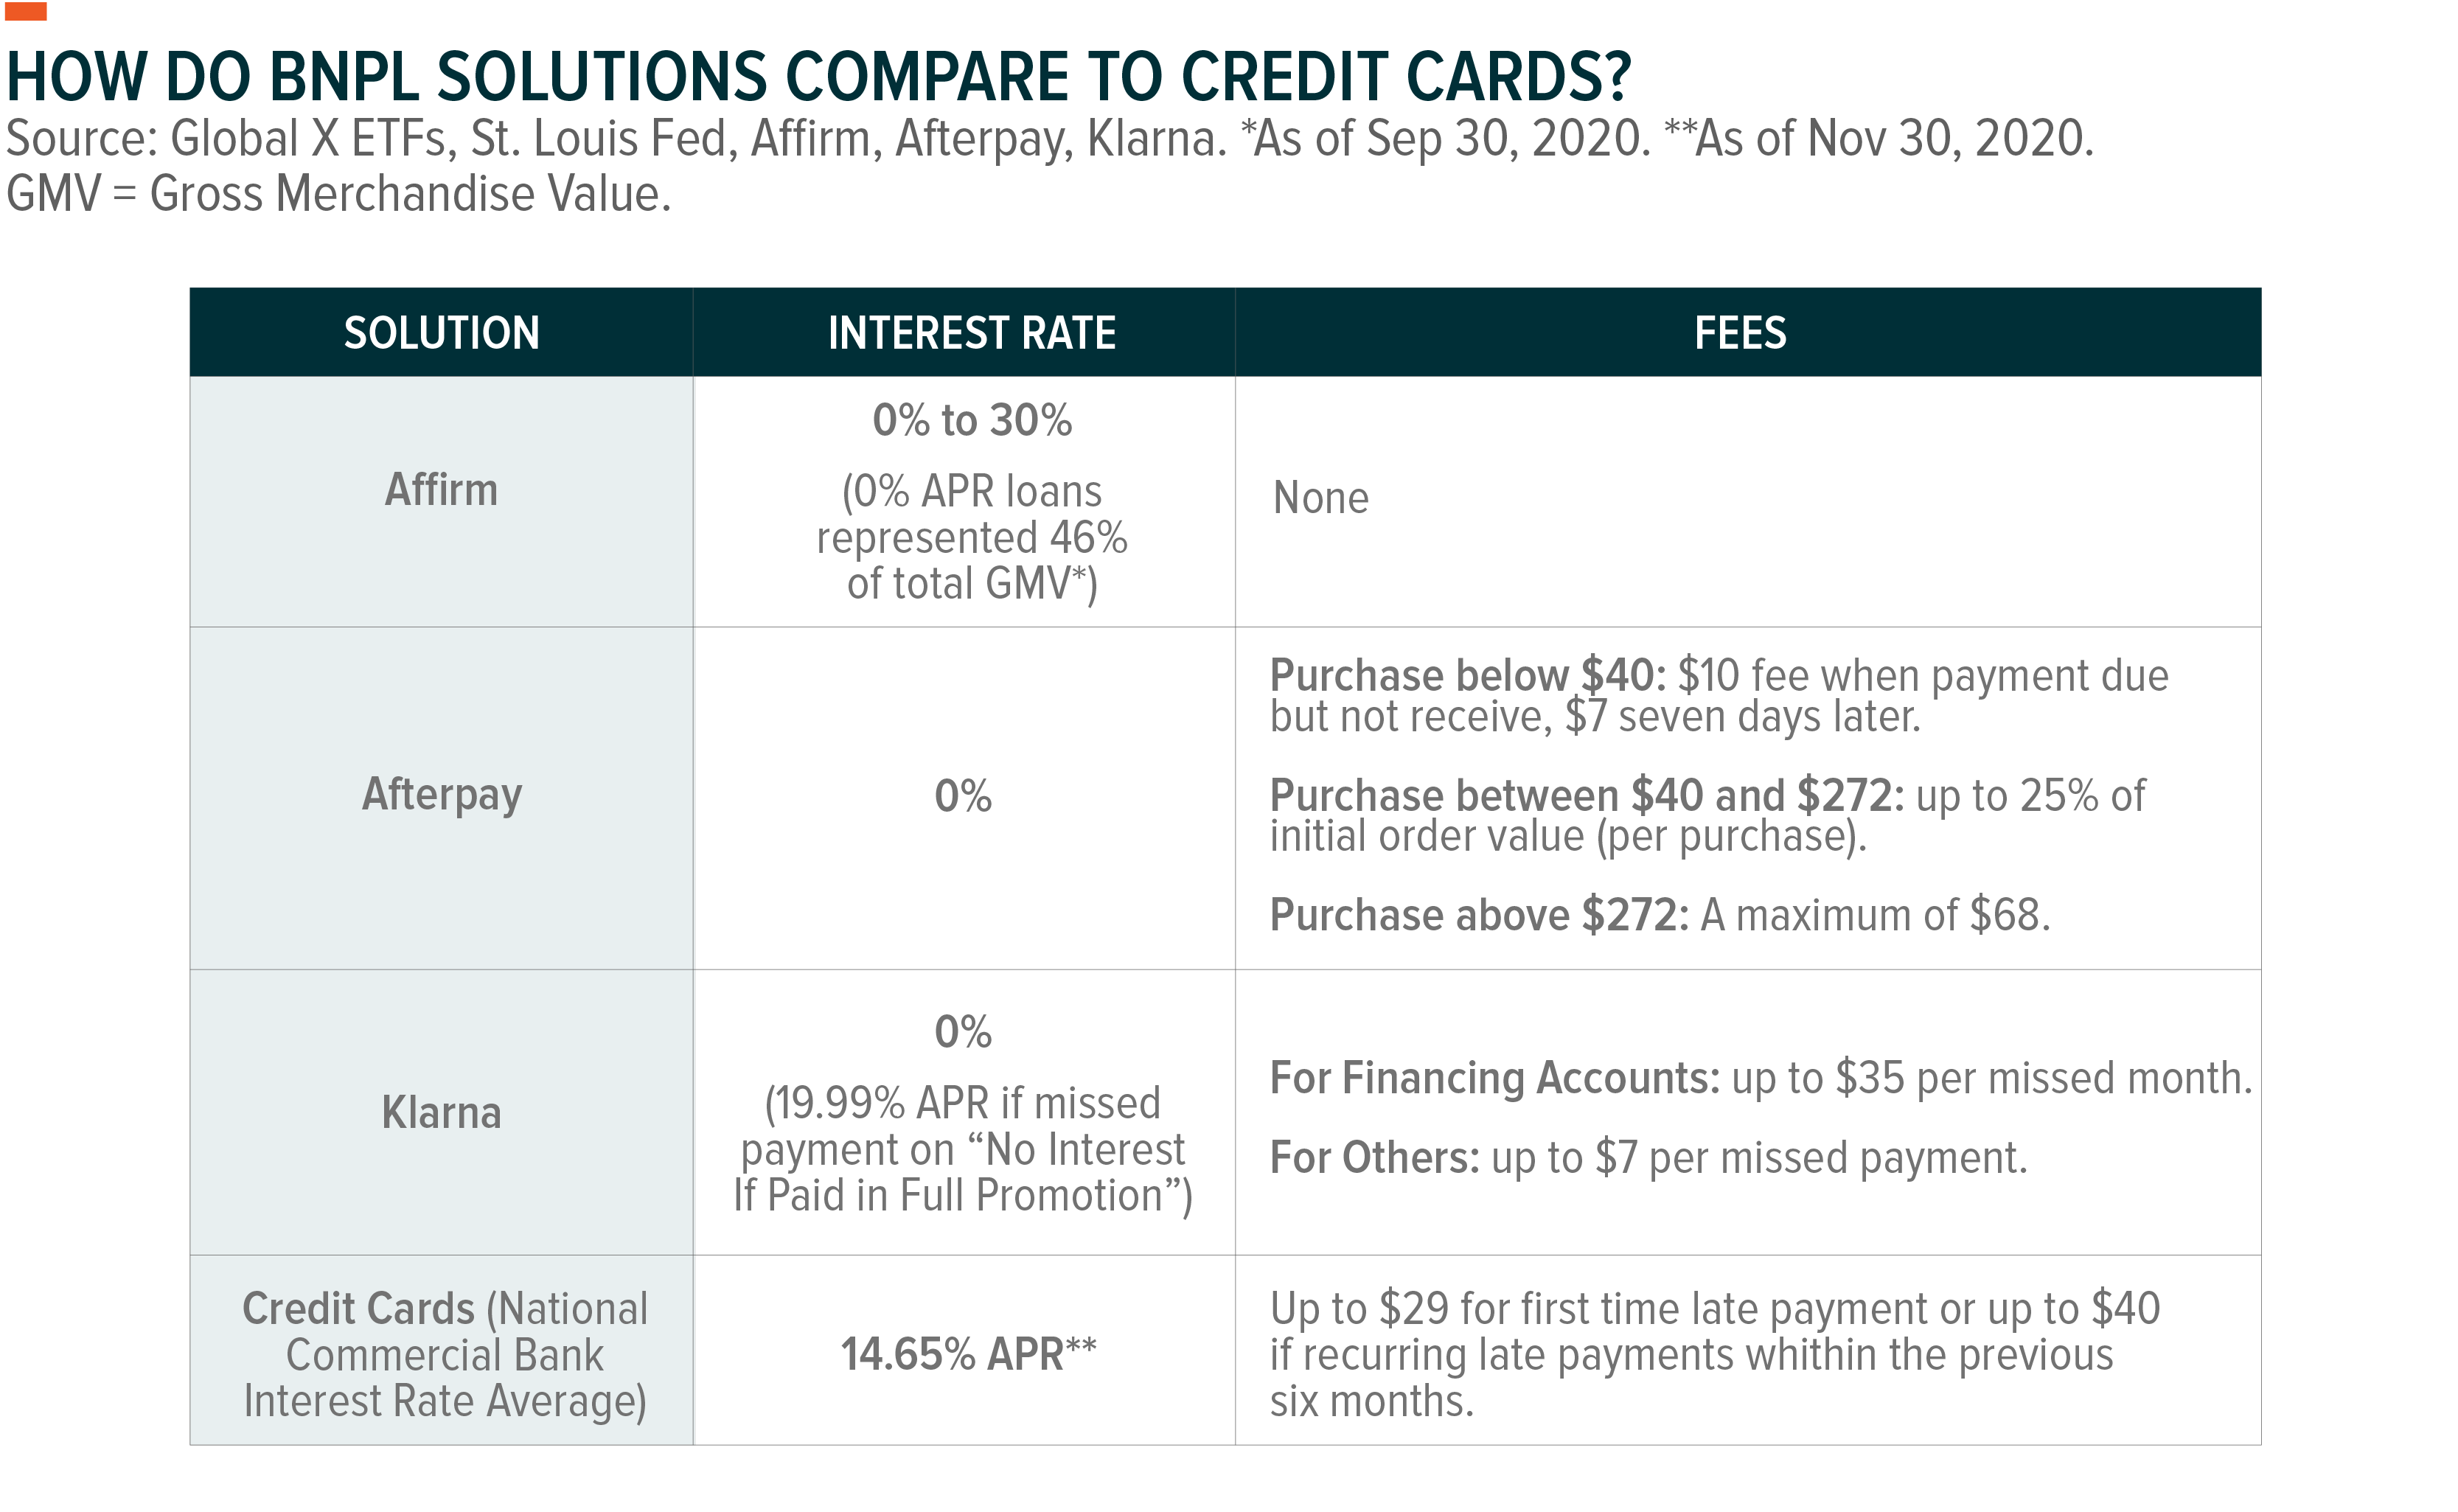 How do BNPL solutions compare to credit cards?